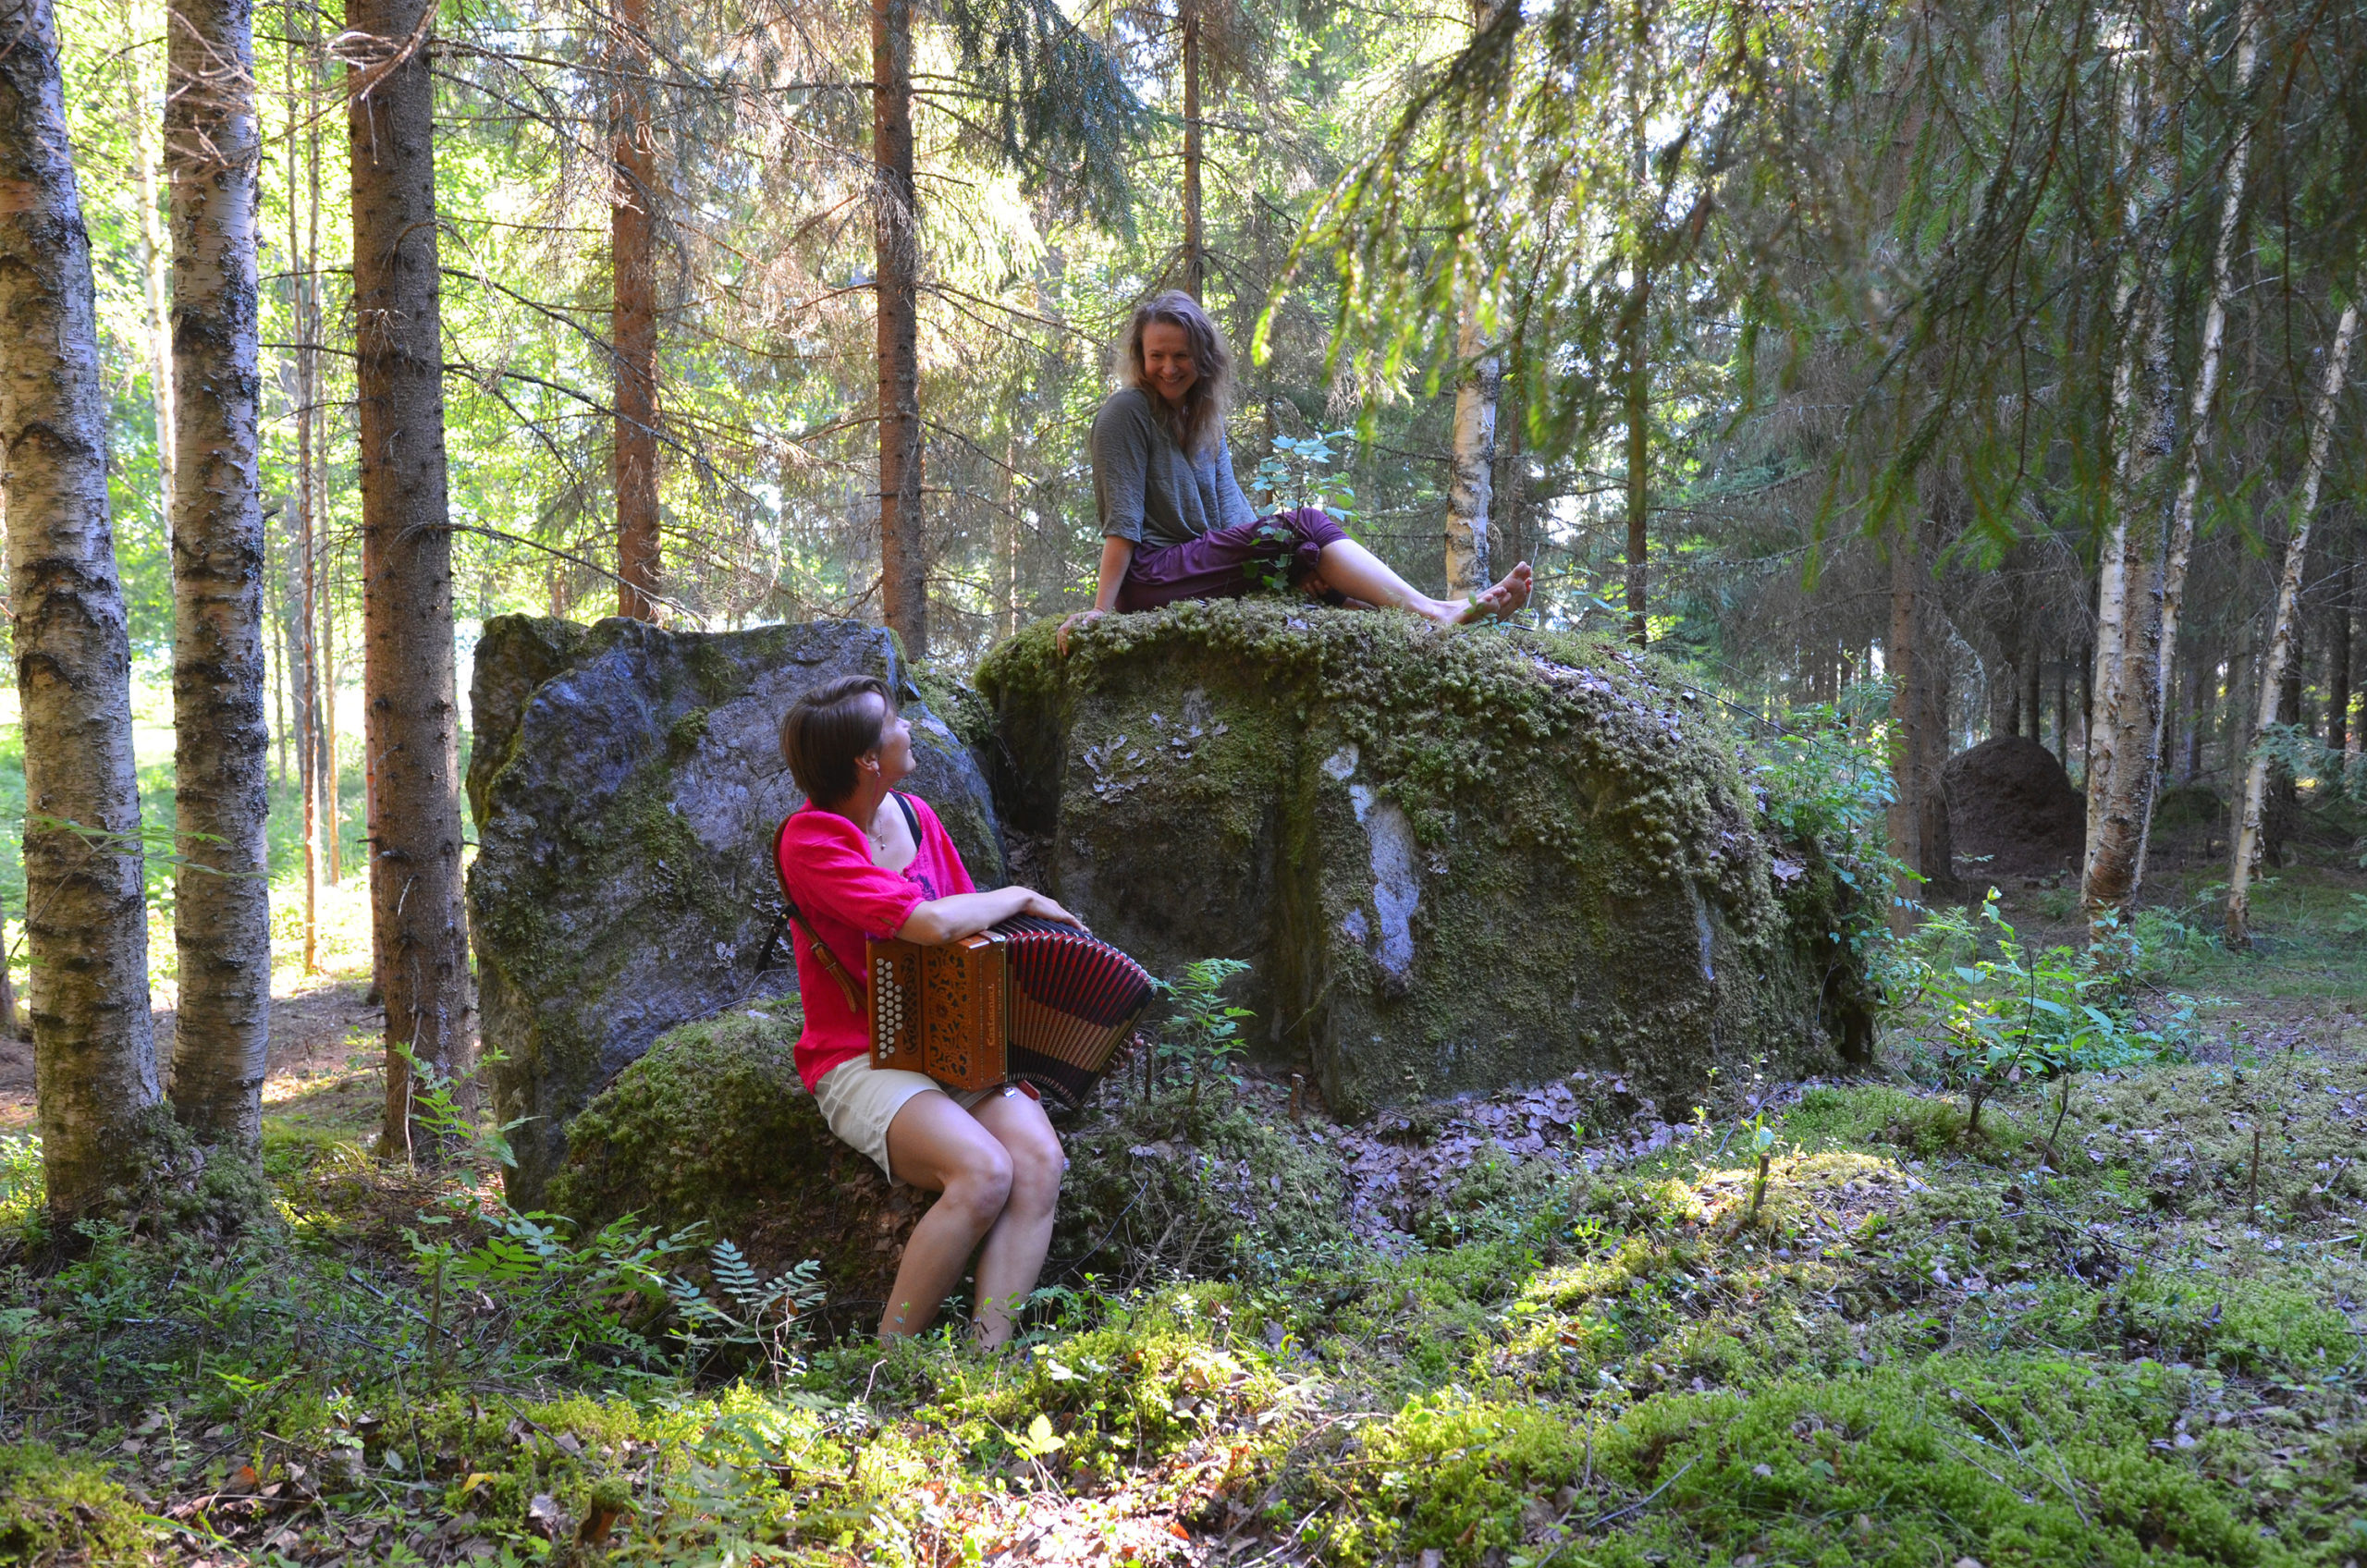 Free movement and somatic practices in the Finnish forest